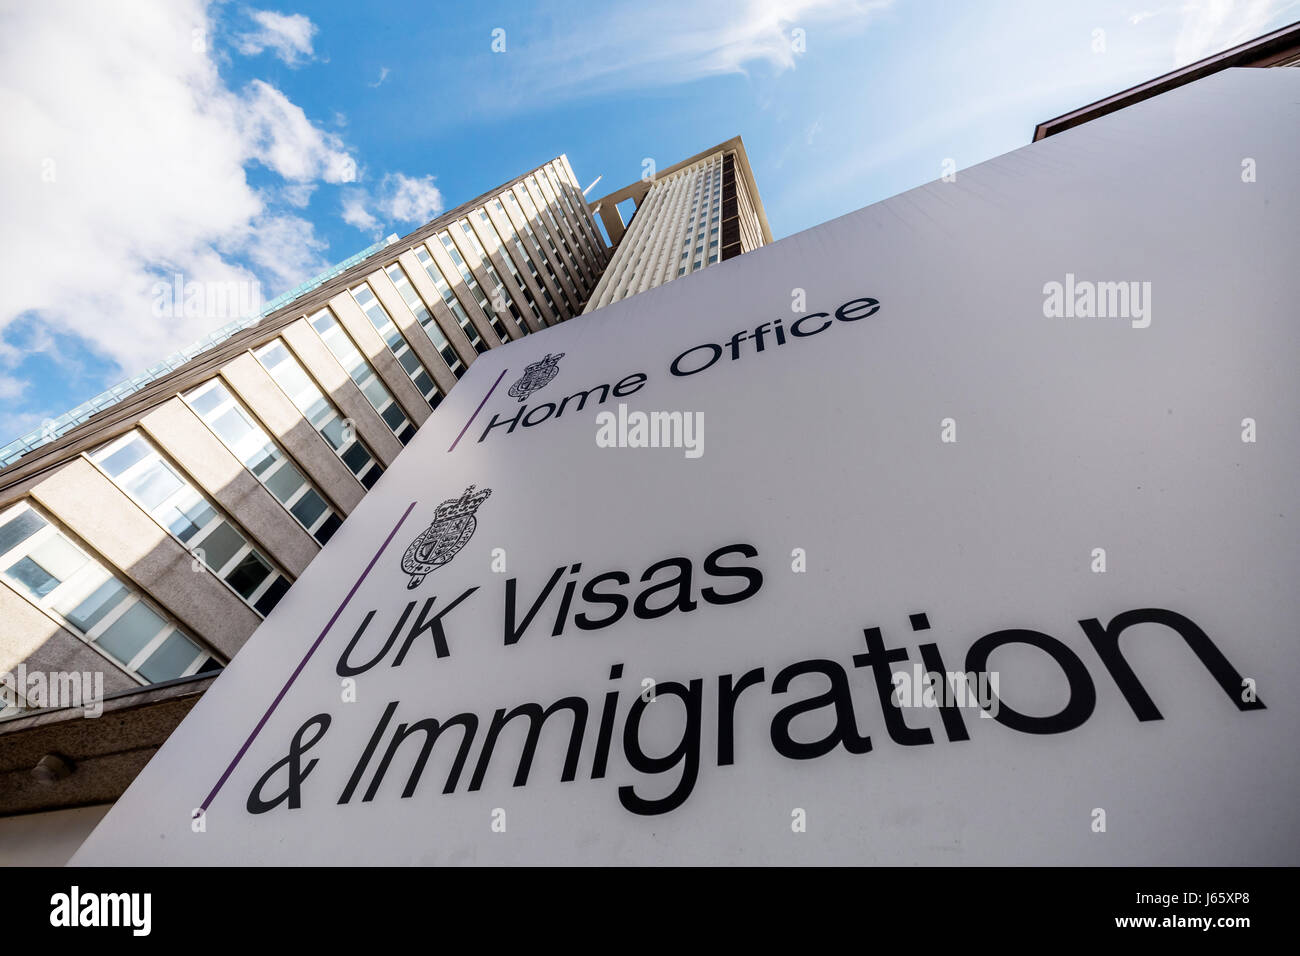 The Home Office UK Visas & Immigration Office at Lunar House in Croydon, London, UK. Stock Photo